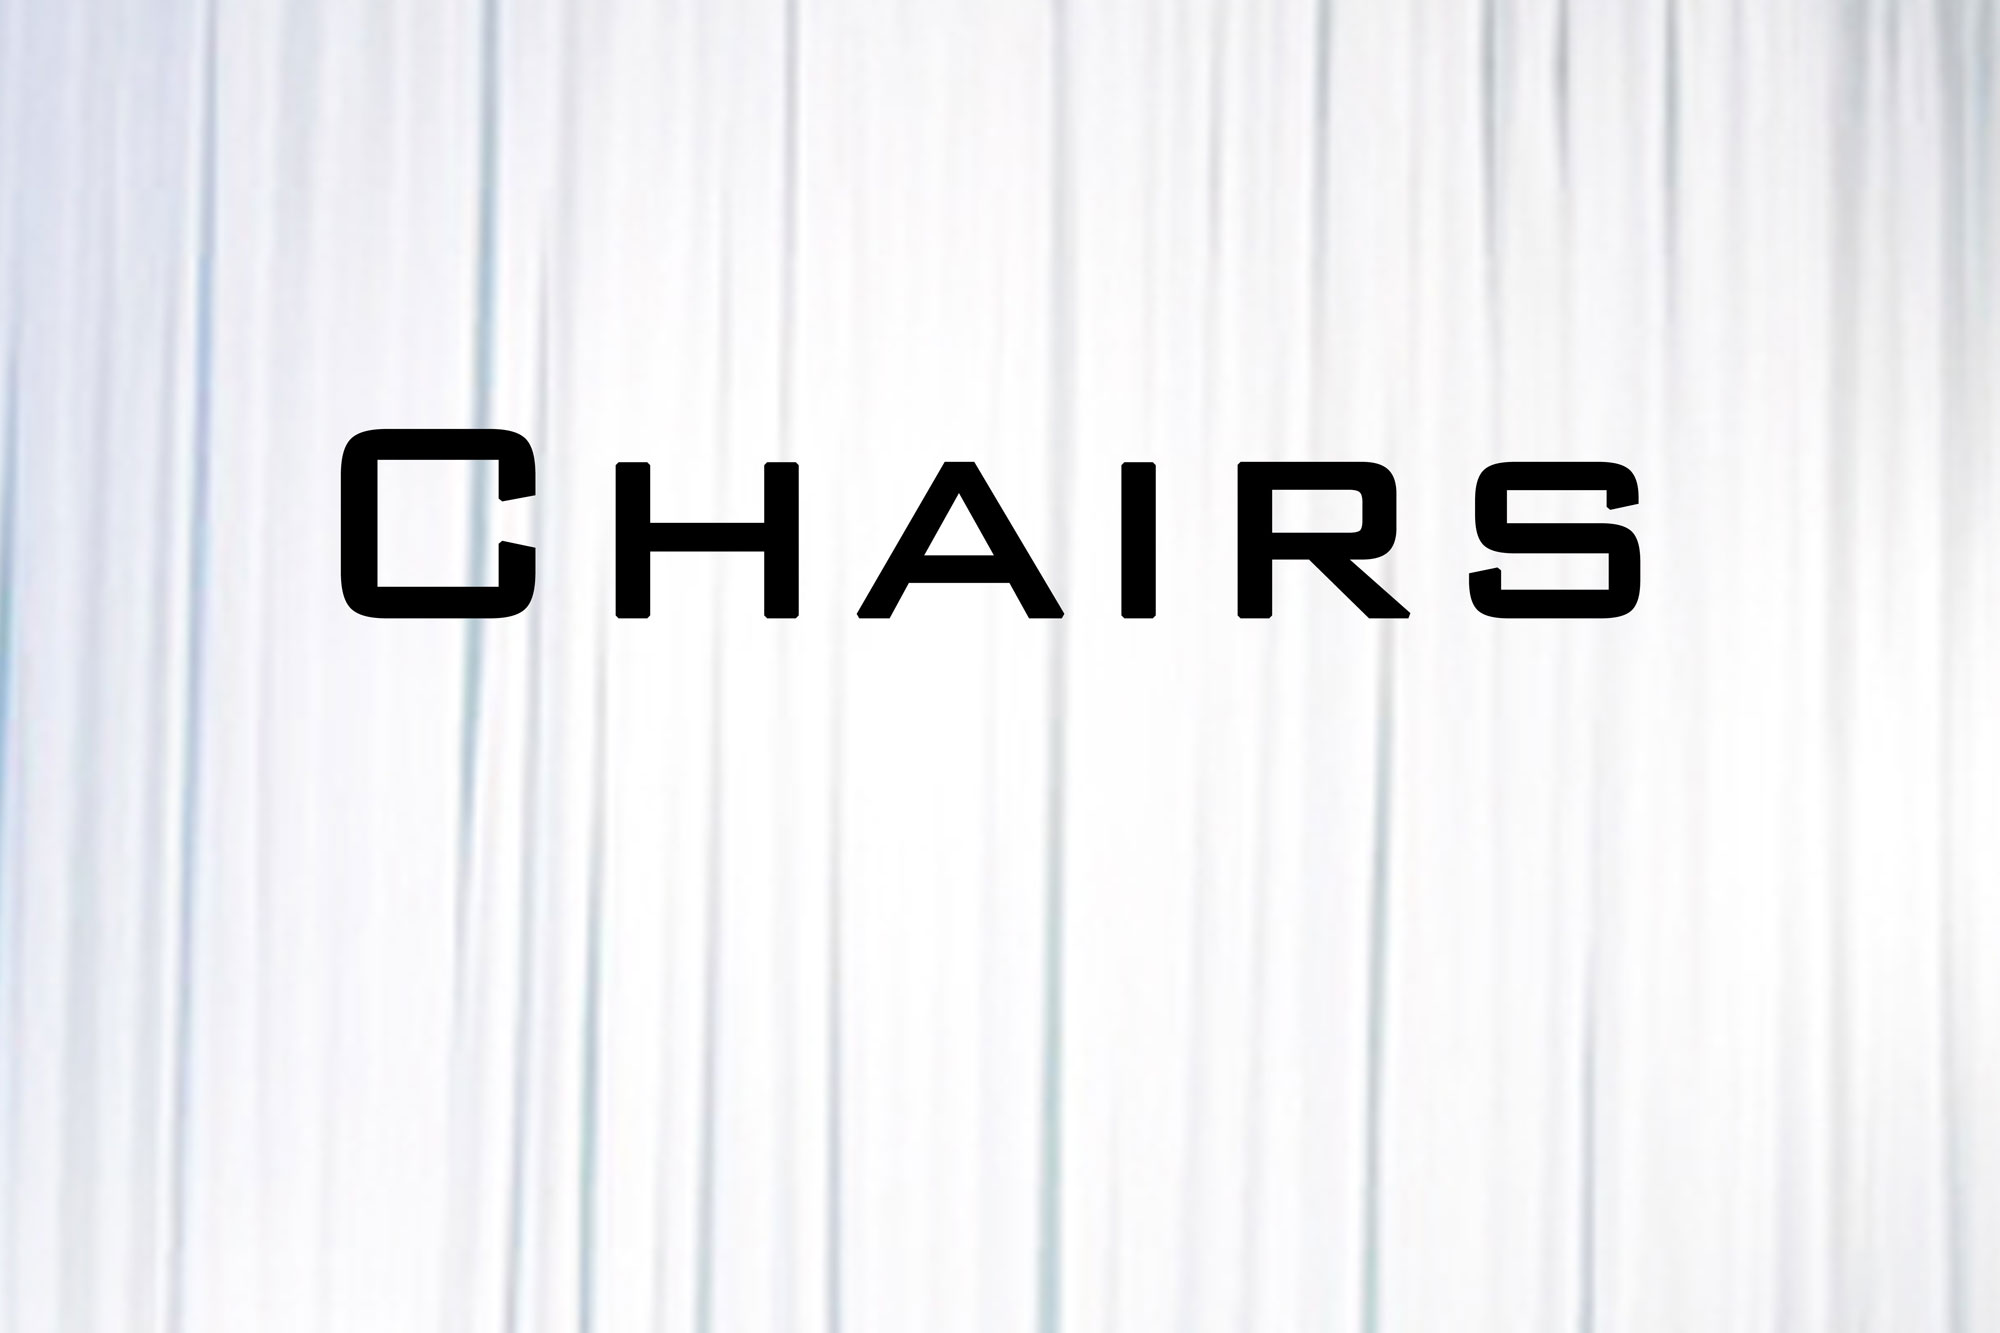 RVS-headings-Chairs